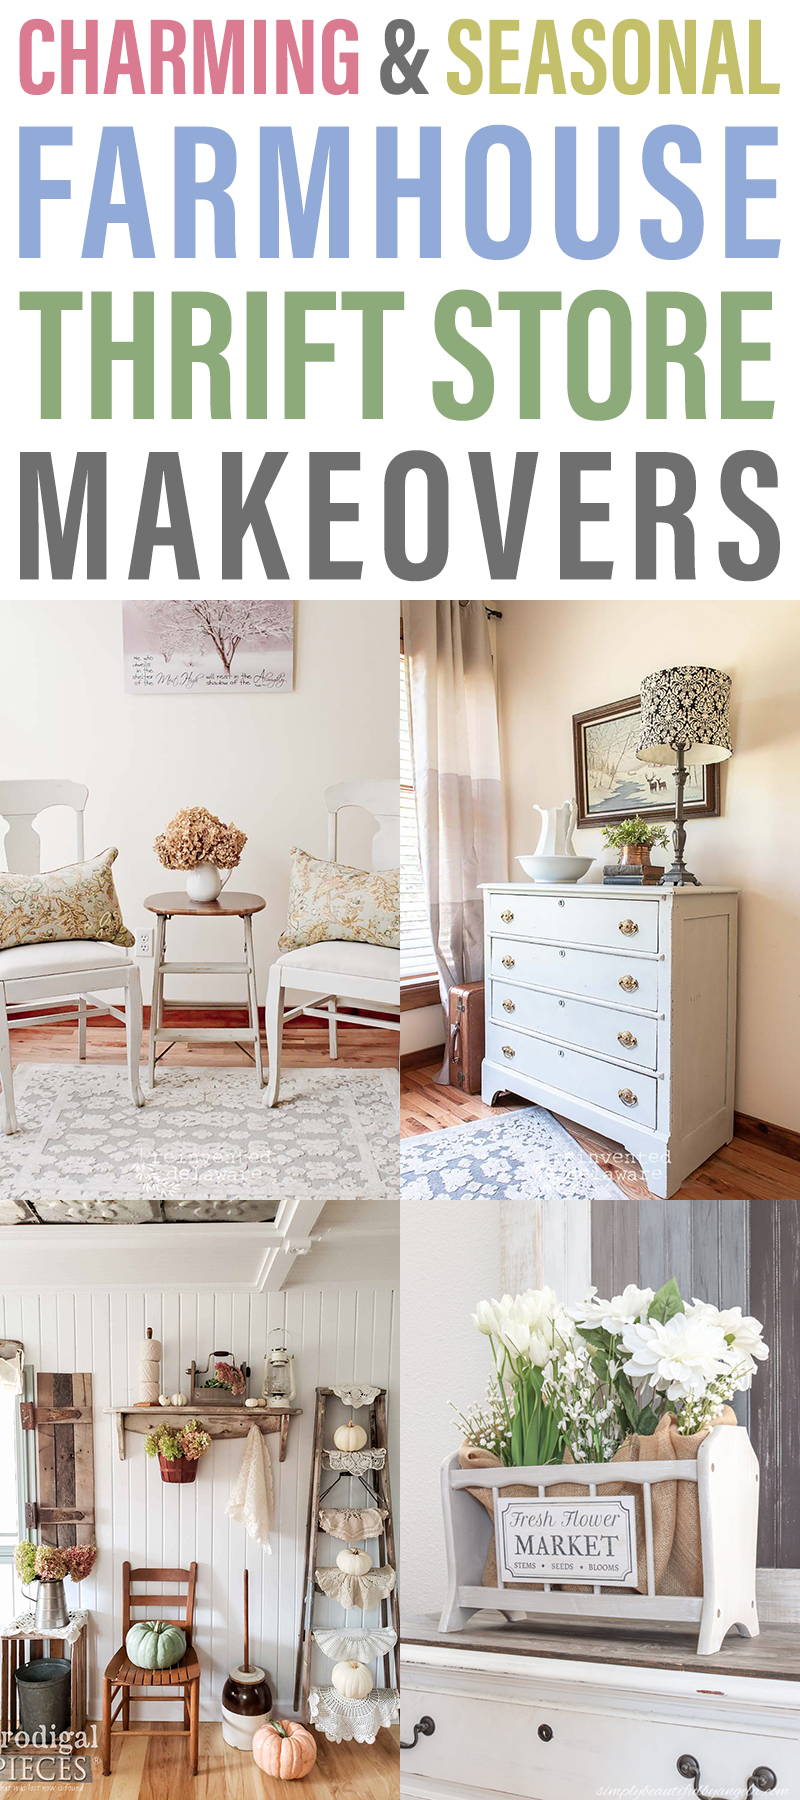 Charming and Seasonal Farmhouse Thrift Store Makeovers are going to Inspired you to create your own original diy project that will be amazing!